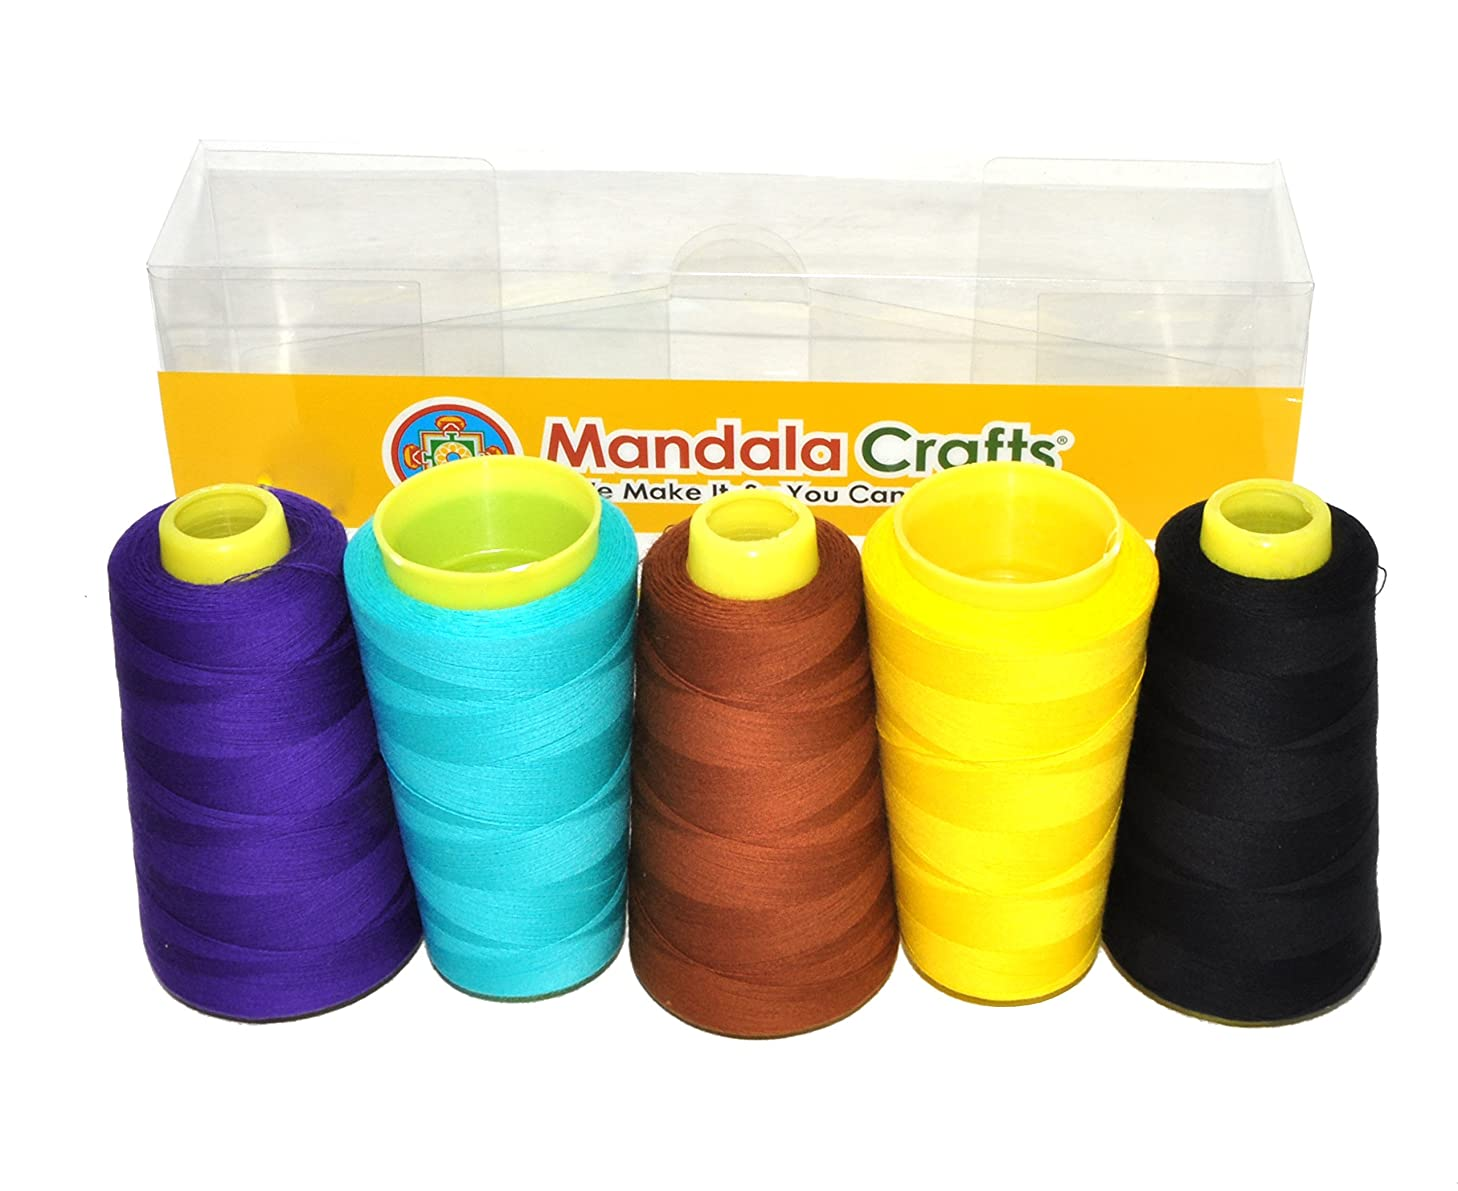 Mandala Crafts Quilting Cotton Thread Cone for Machine and Hand Sewing, 100 Percent Natural Mercerized, 50 wt (5 Rolls 6000 Yards, Black Aquamarine Brown Yellow Violet Combo 3)